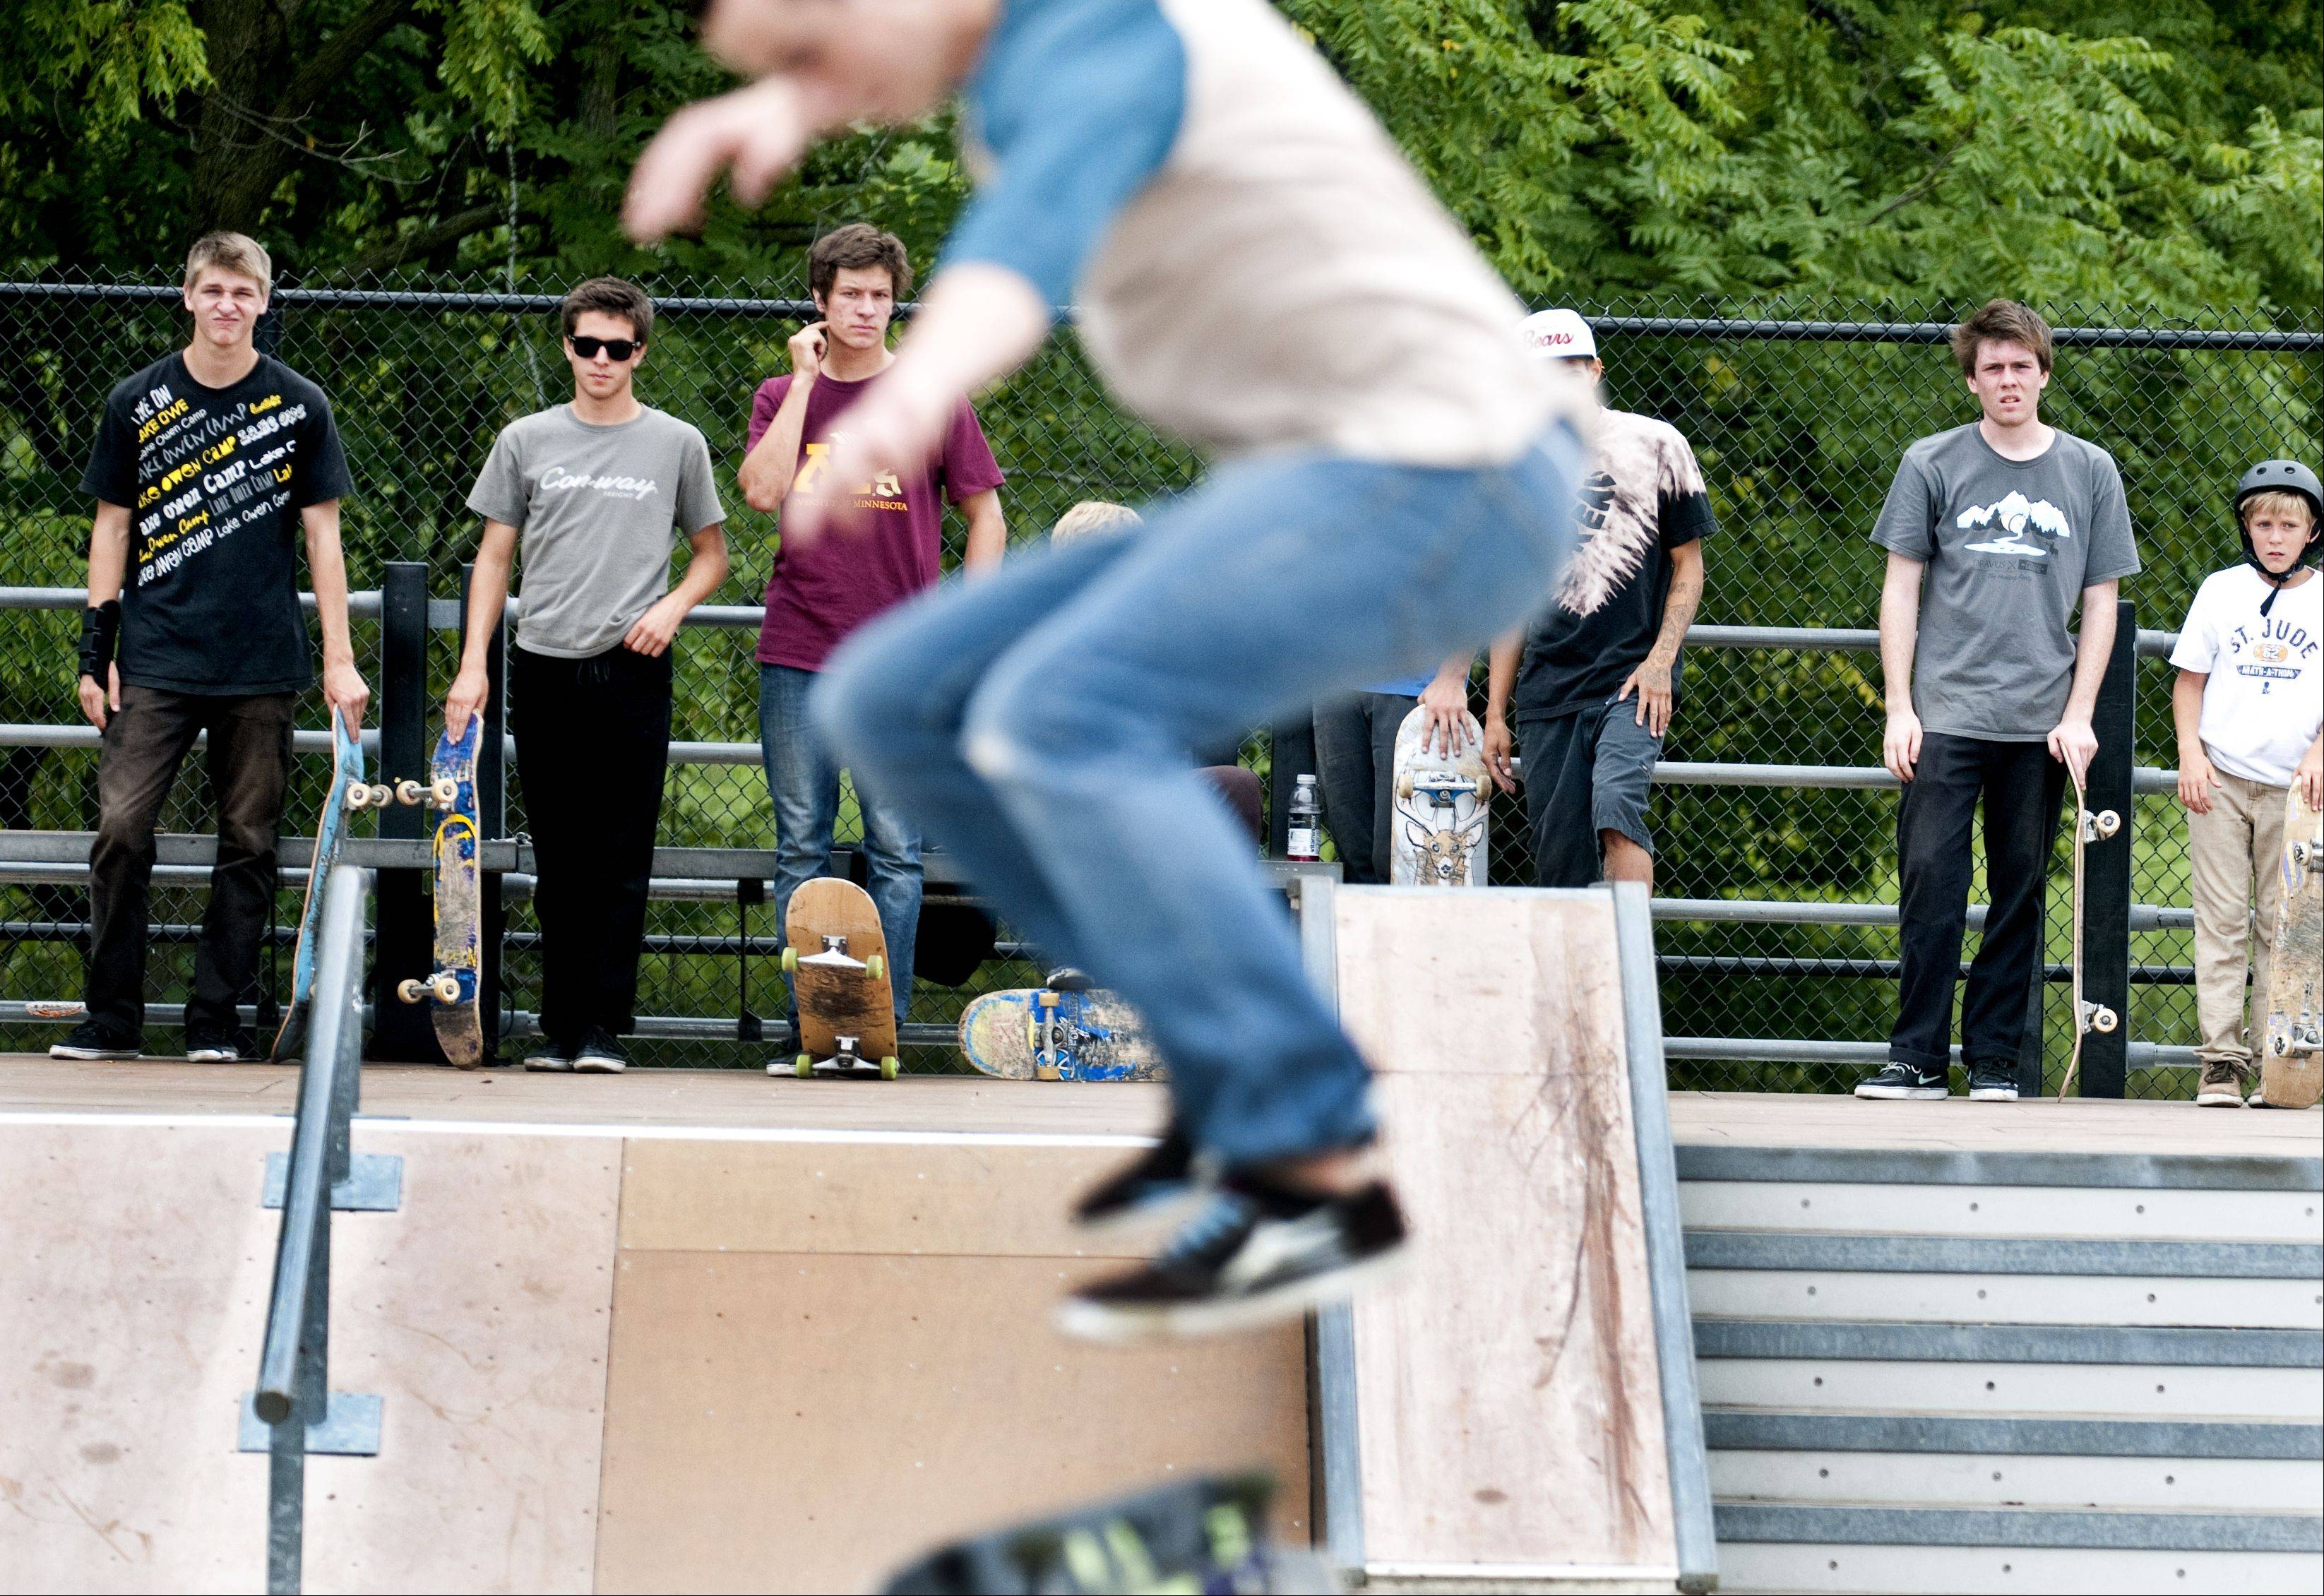 Skaters watch the best trick competition at a skateboard contest hosted Sunday by the Geneva Park District at the South Street skate park. Competitors were split into groups based on skill.